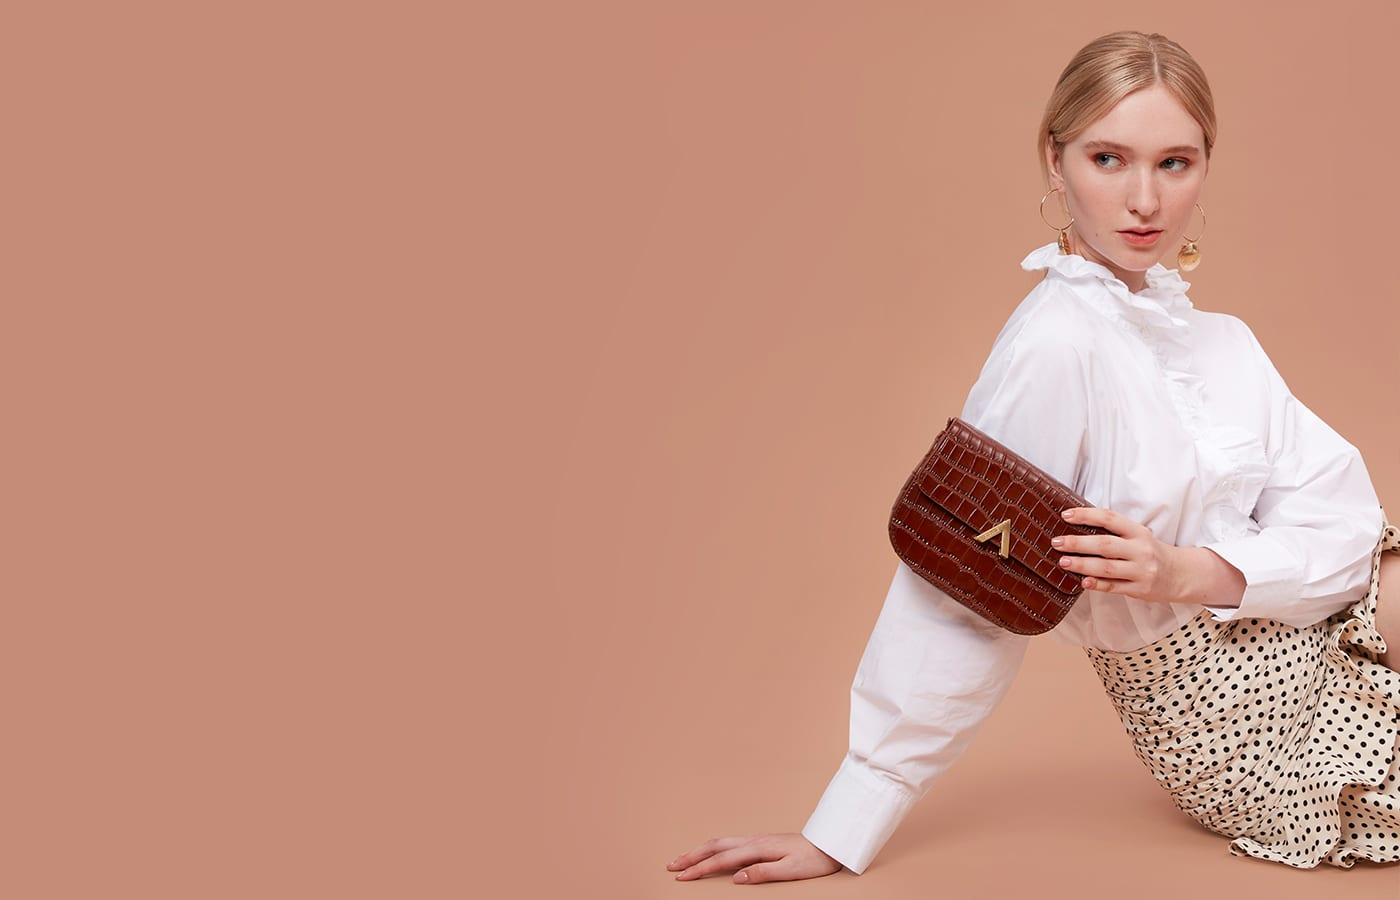 Giveaway time: Two lucky readers have the chance to win a gorgeous handbag from Esemble